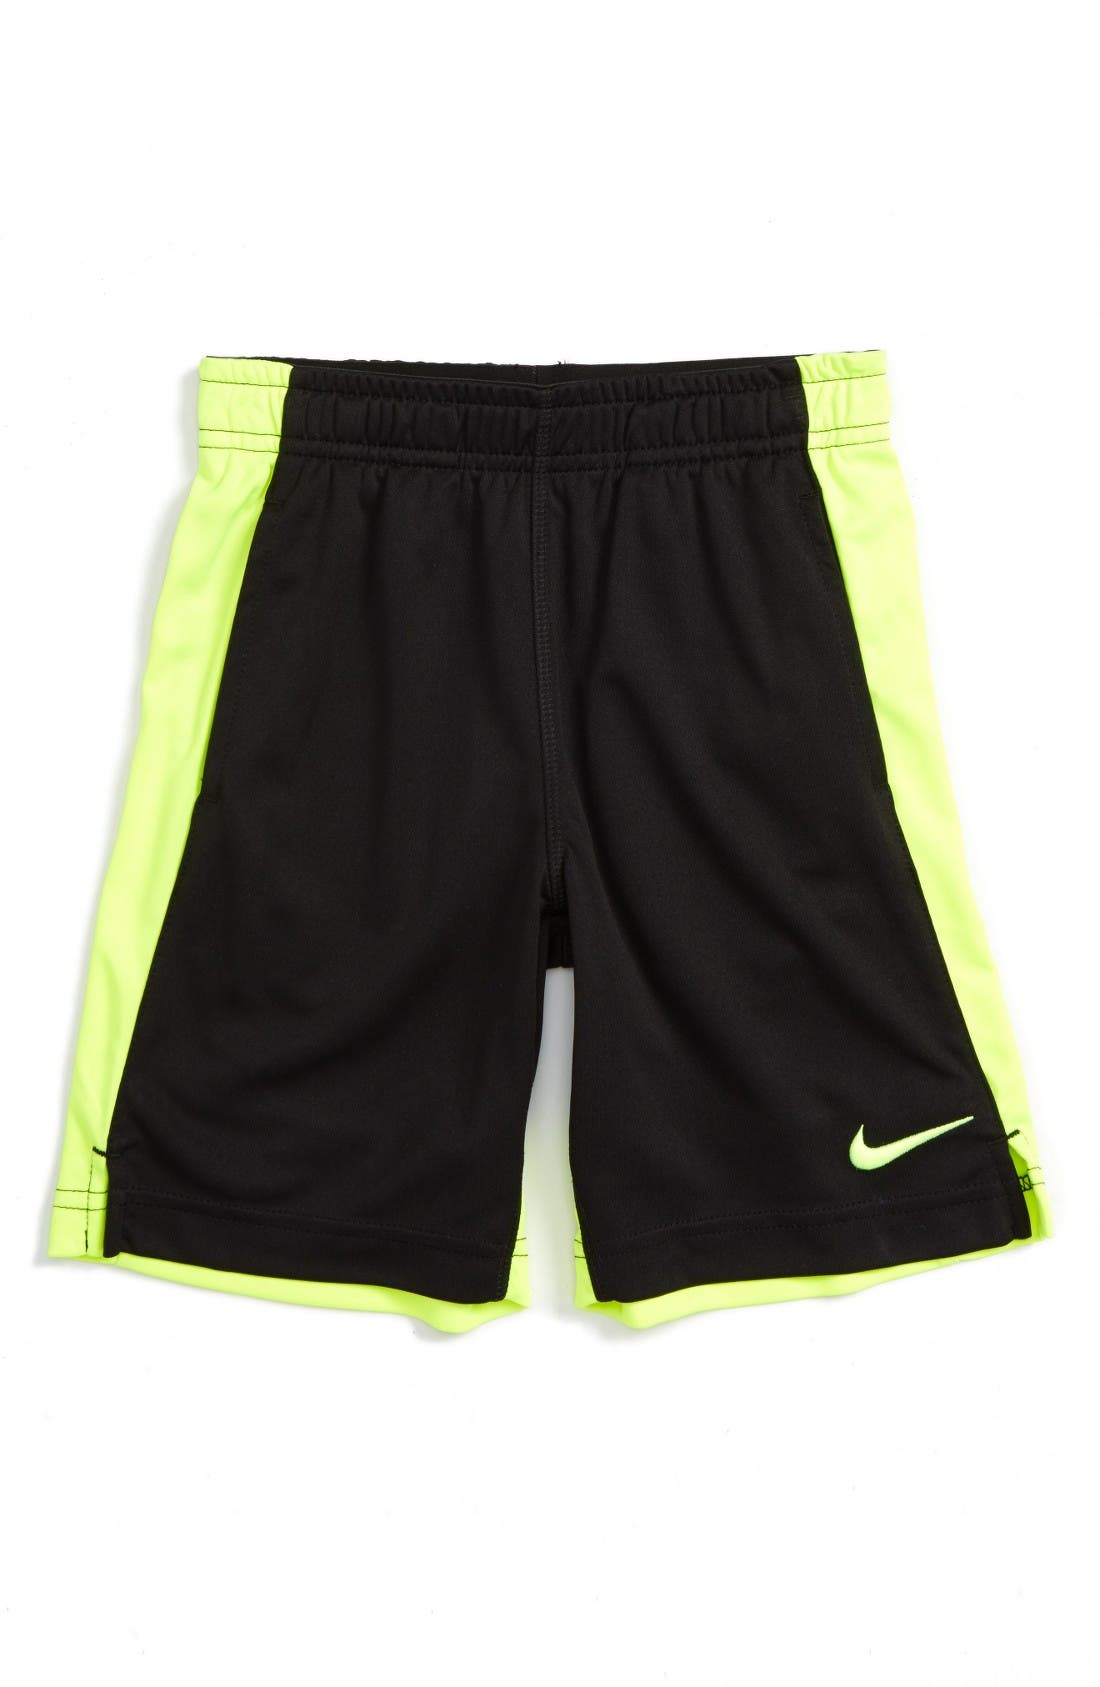 Nike Dri-FIT Shorts (Toddler Boys & Little Boys)